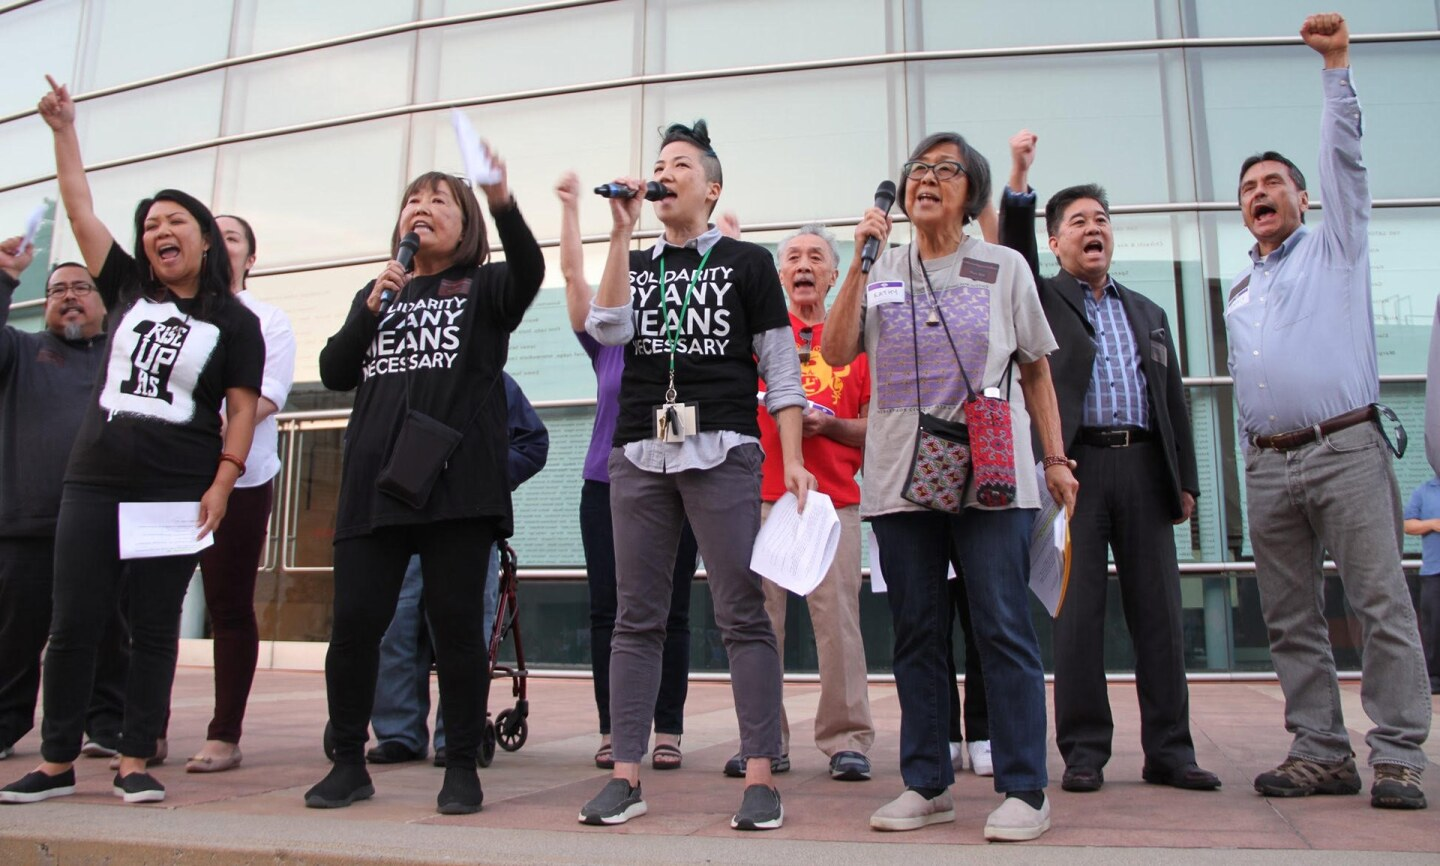 About ten people stand together speaking into microphones. Several raise their fists to the sky.